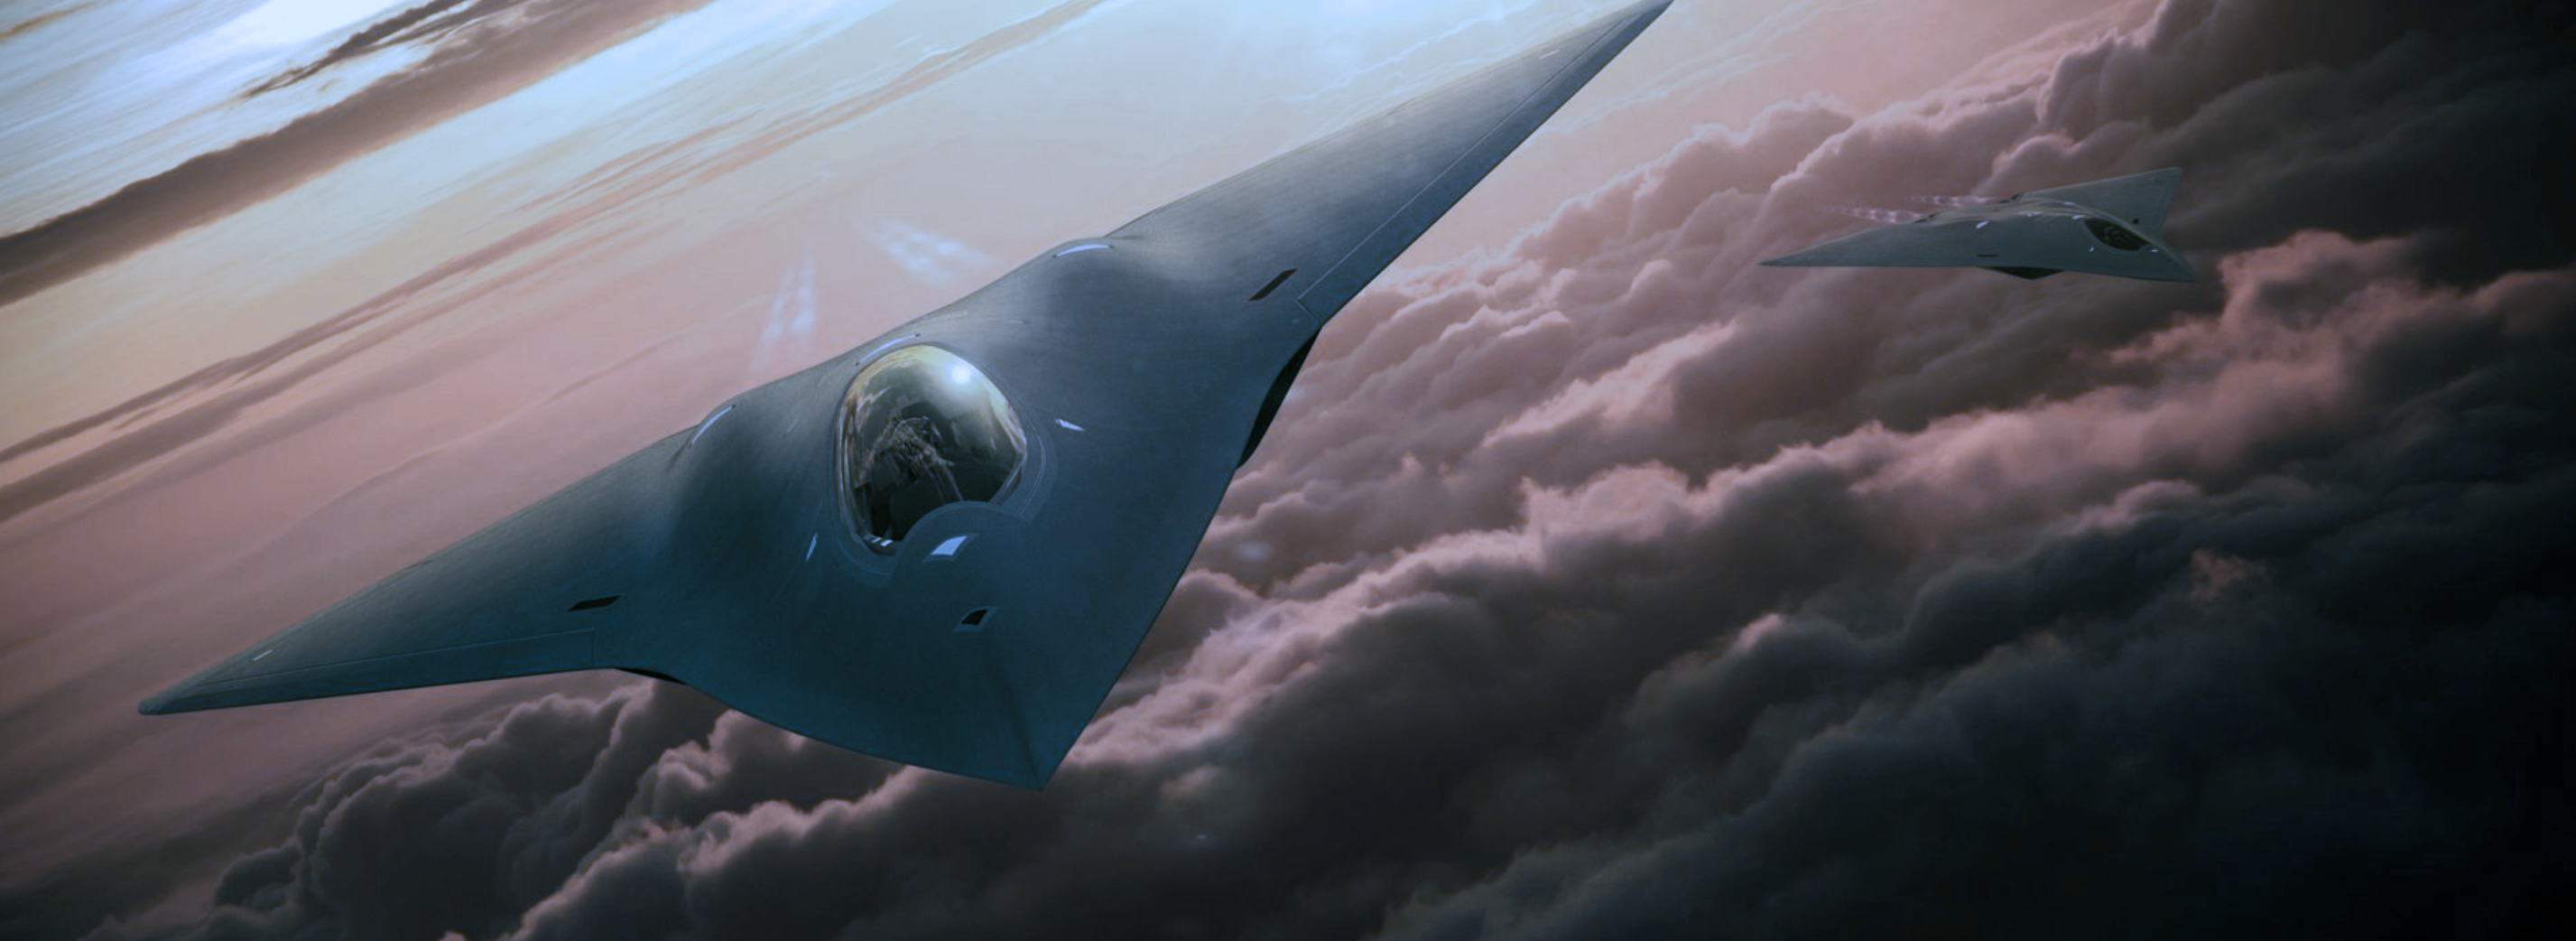 Clues Reveal Who's Likely Building the Air Force's Secret New Fighter Jet